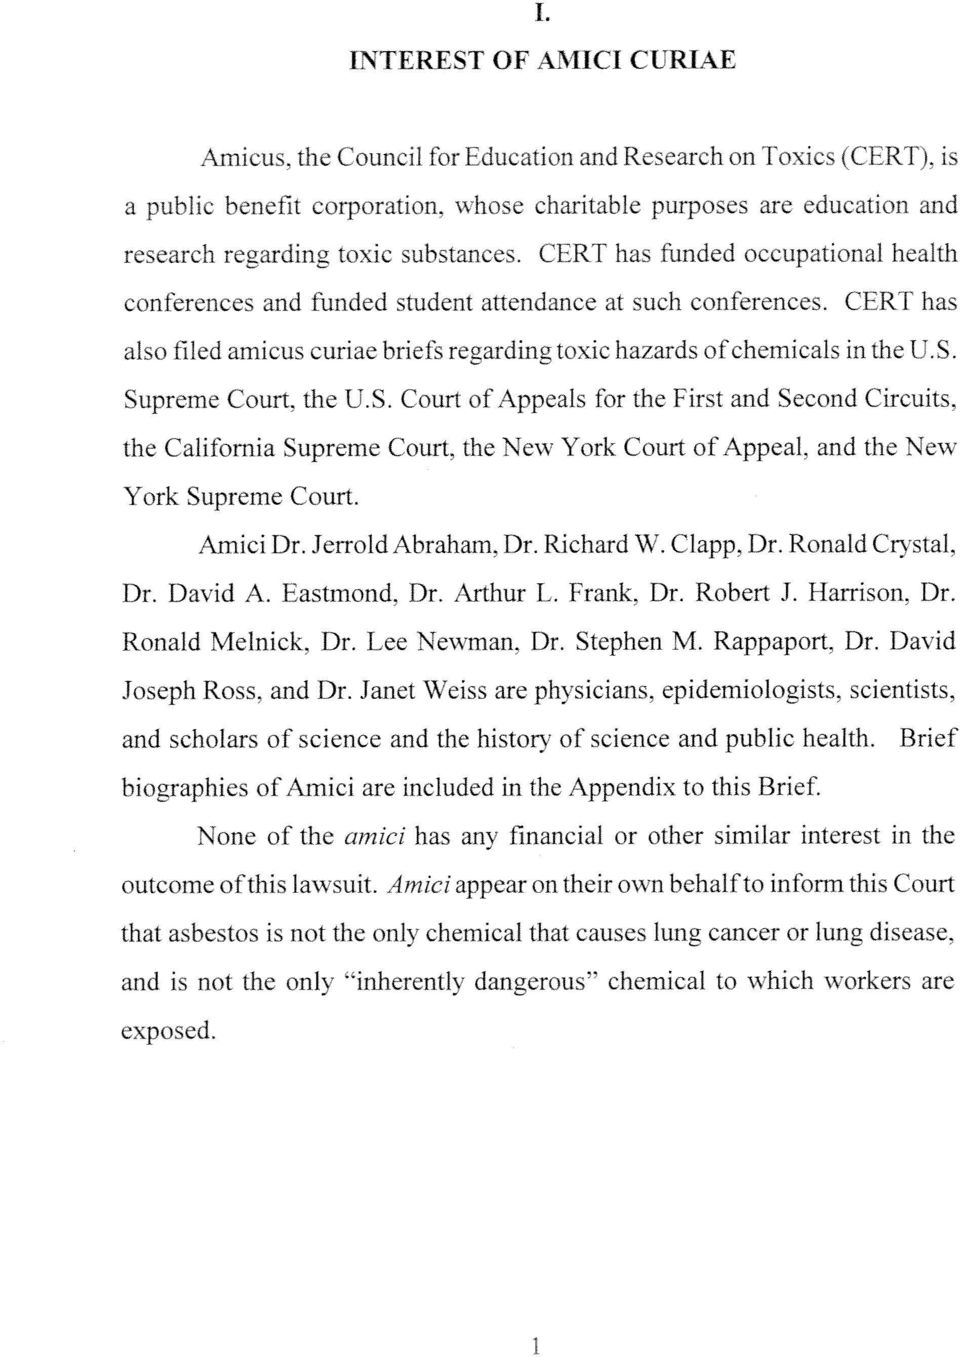 CERT has also filed amicus curiae briefs regarding toxic hazards of chemicals in the US.